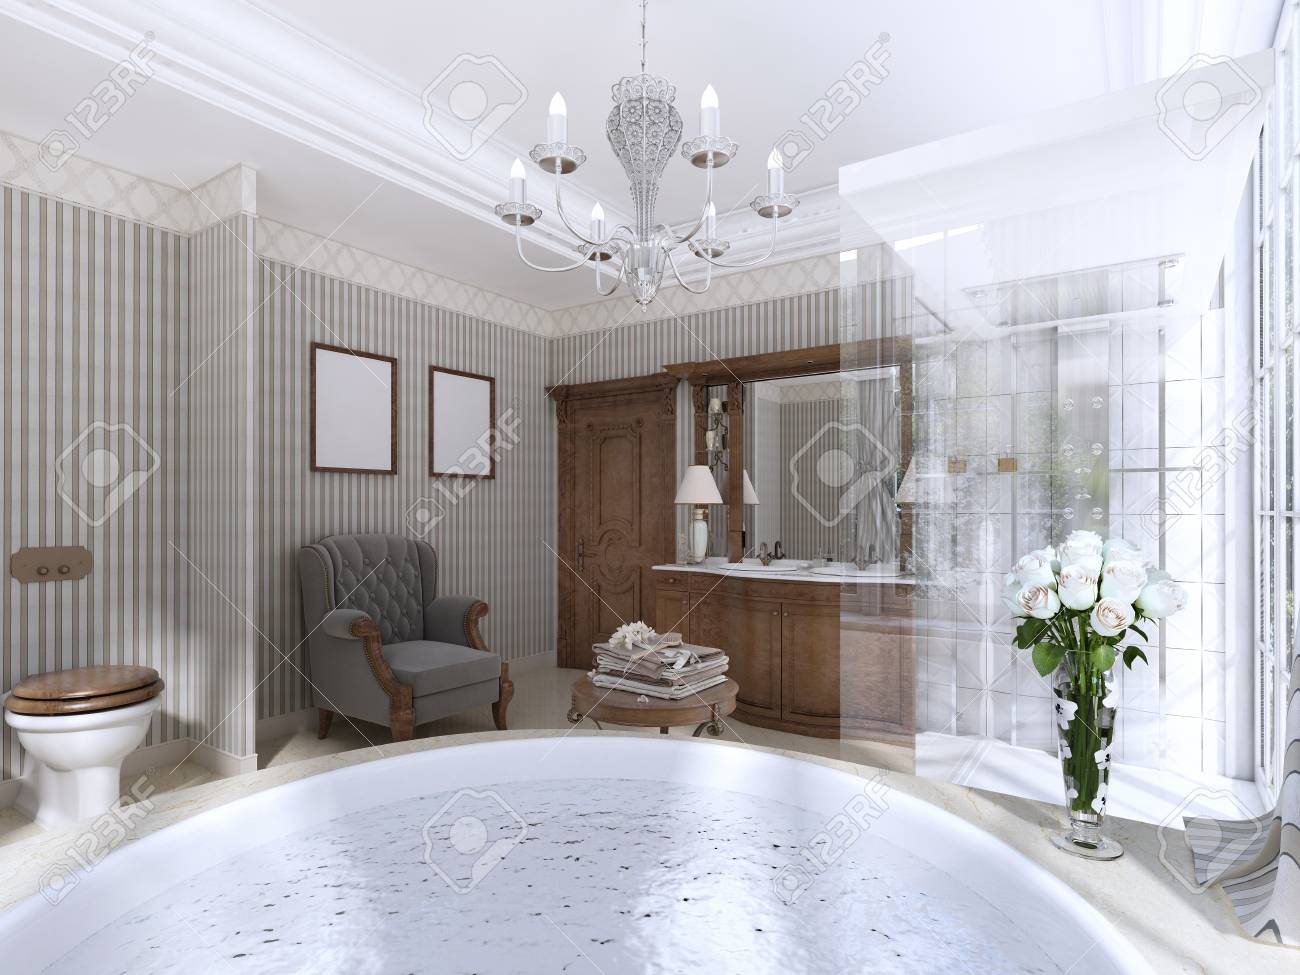 Luxury Bathroom In Classic Style. Bathroom With Jacuzzi, Shower ...